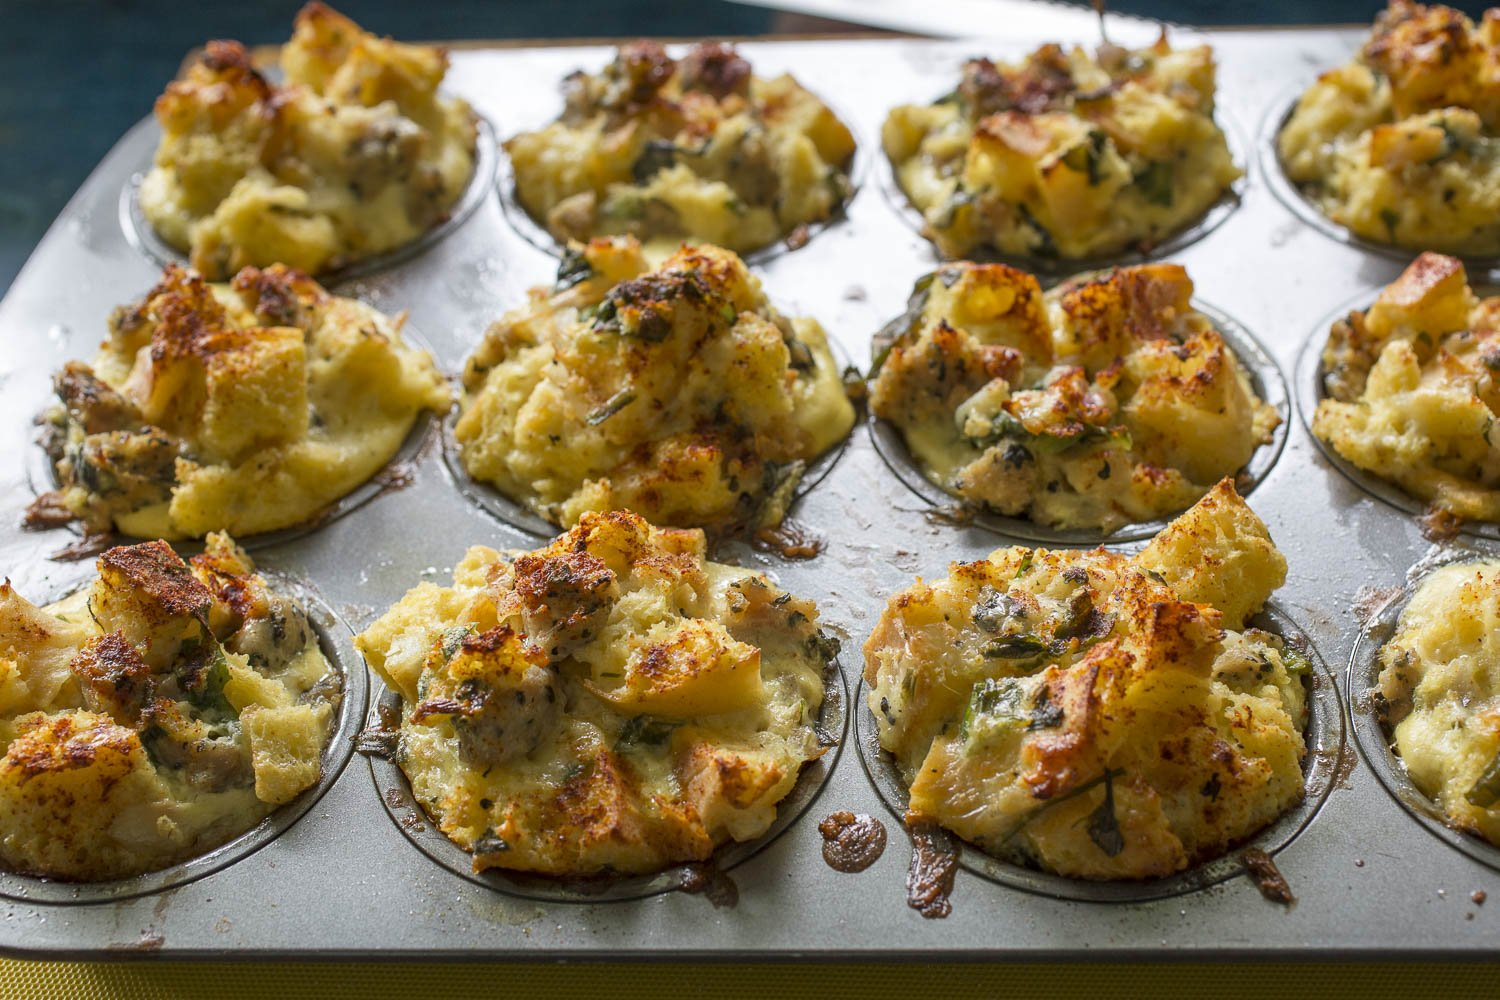 Savory French Toast Muffins Stratta just baked|www.recipefiction.com